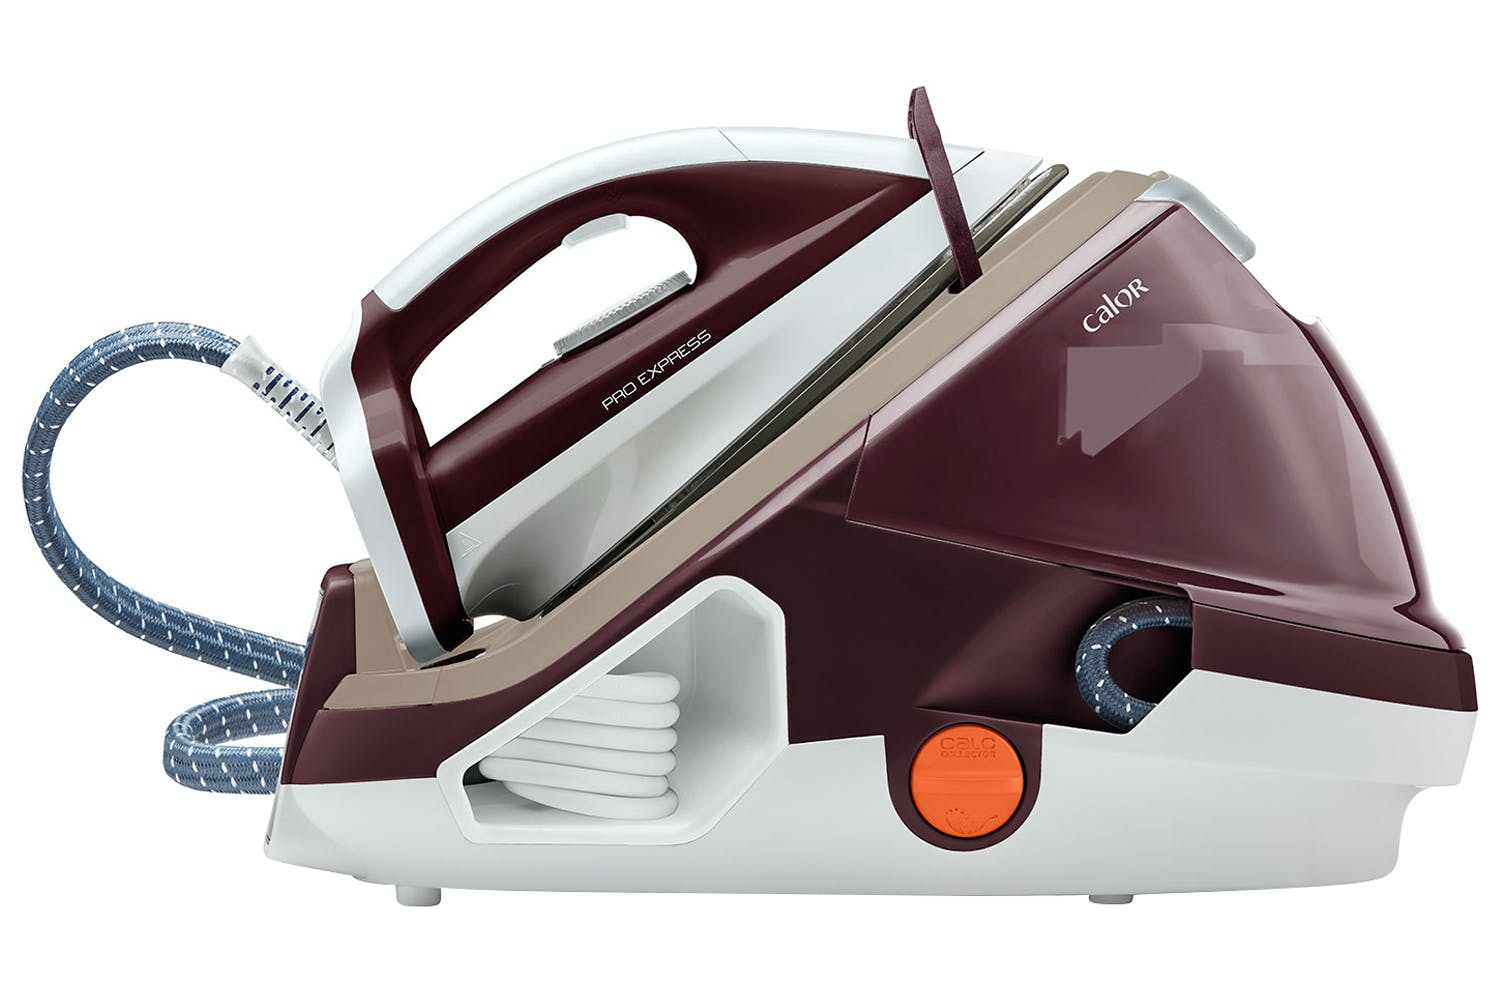 Tefal 2400W Pro Express High Pressure Steam Generator Iron | GV7810G0